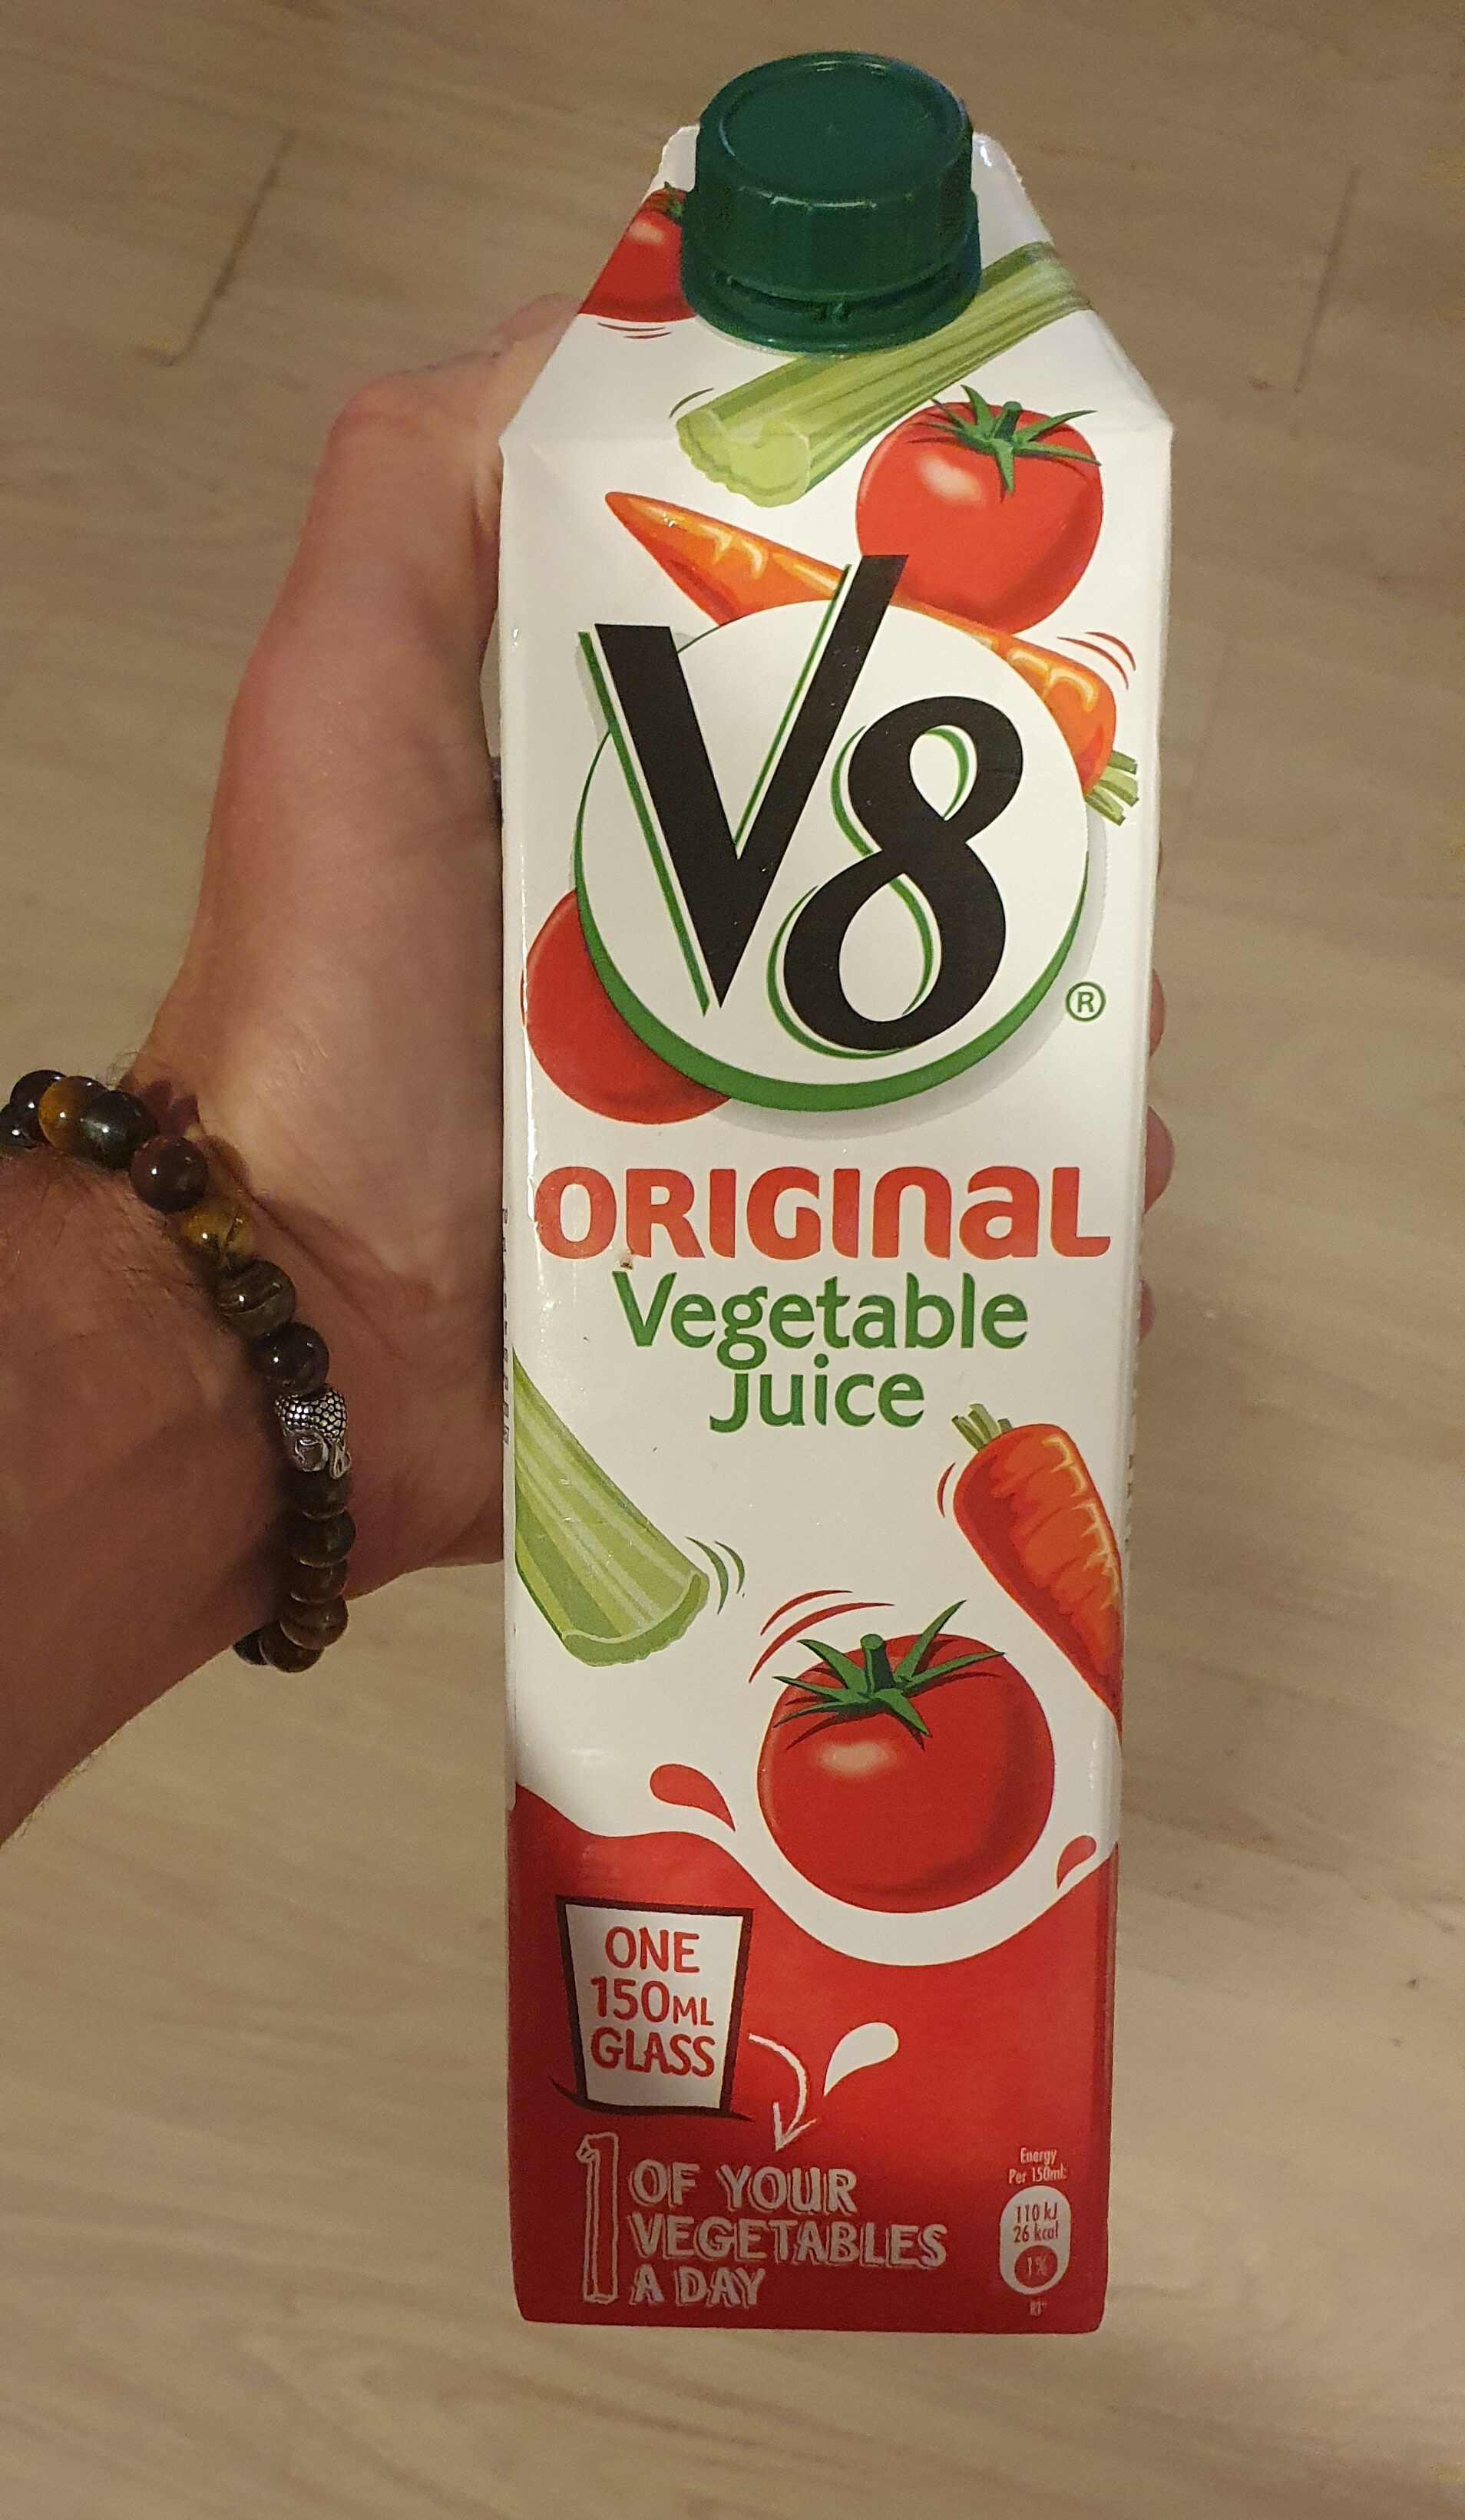 V8 Original Vegetable Juice Tetra Pak 1L - Product - fr